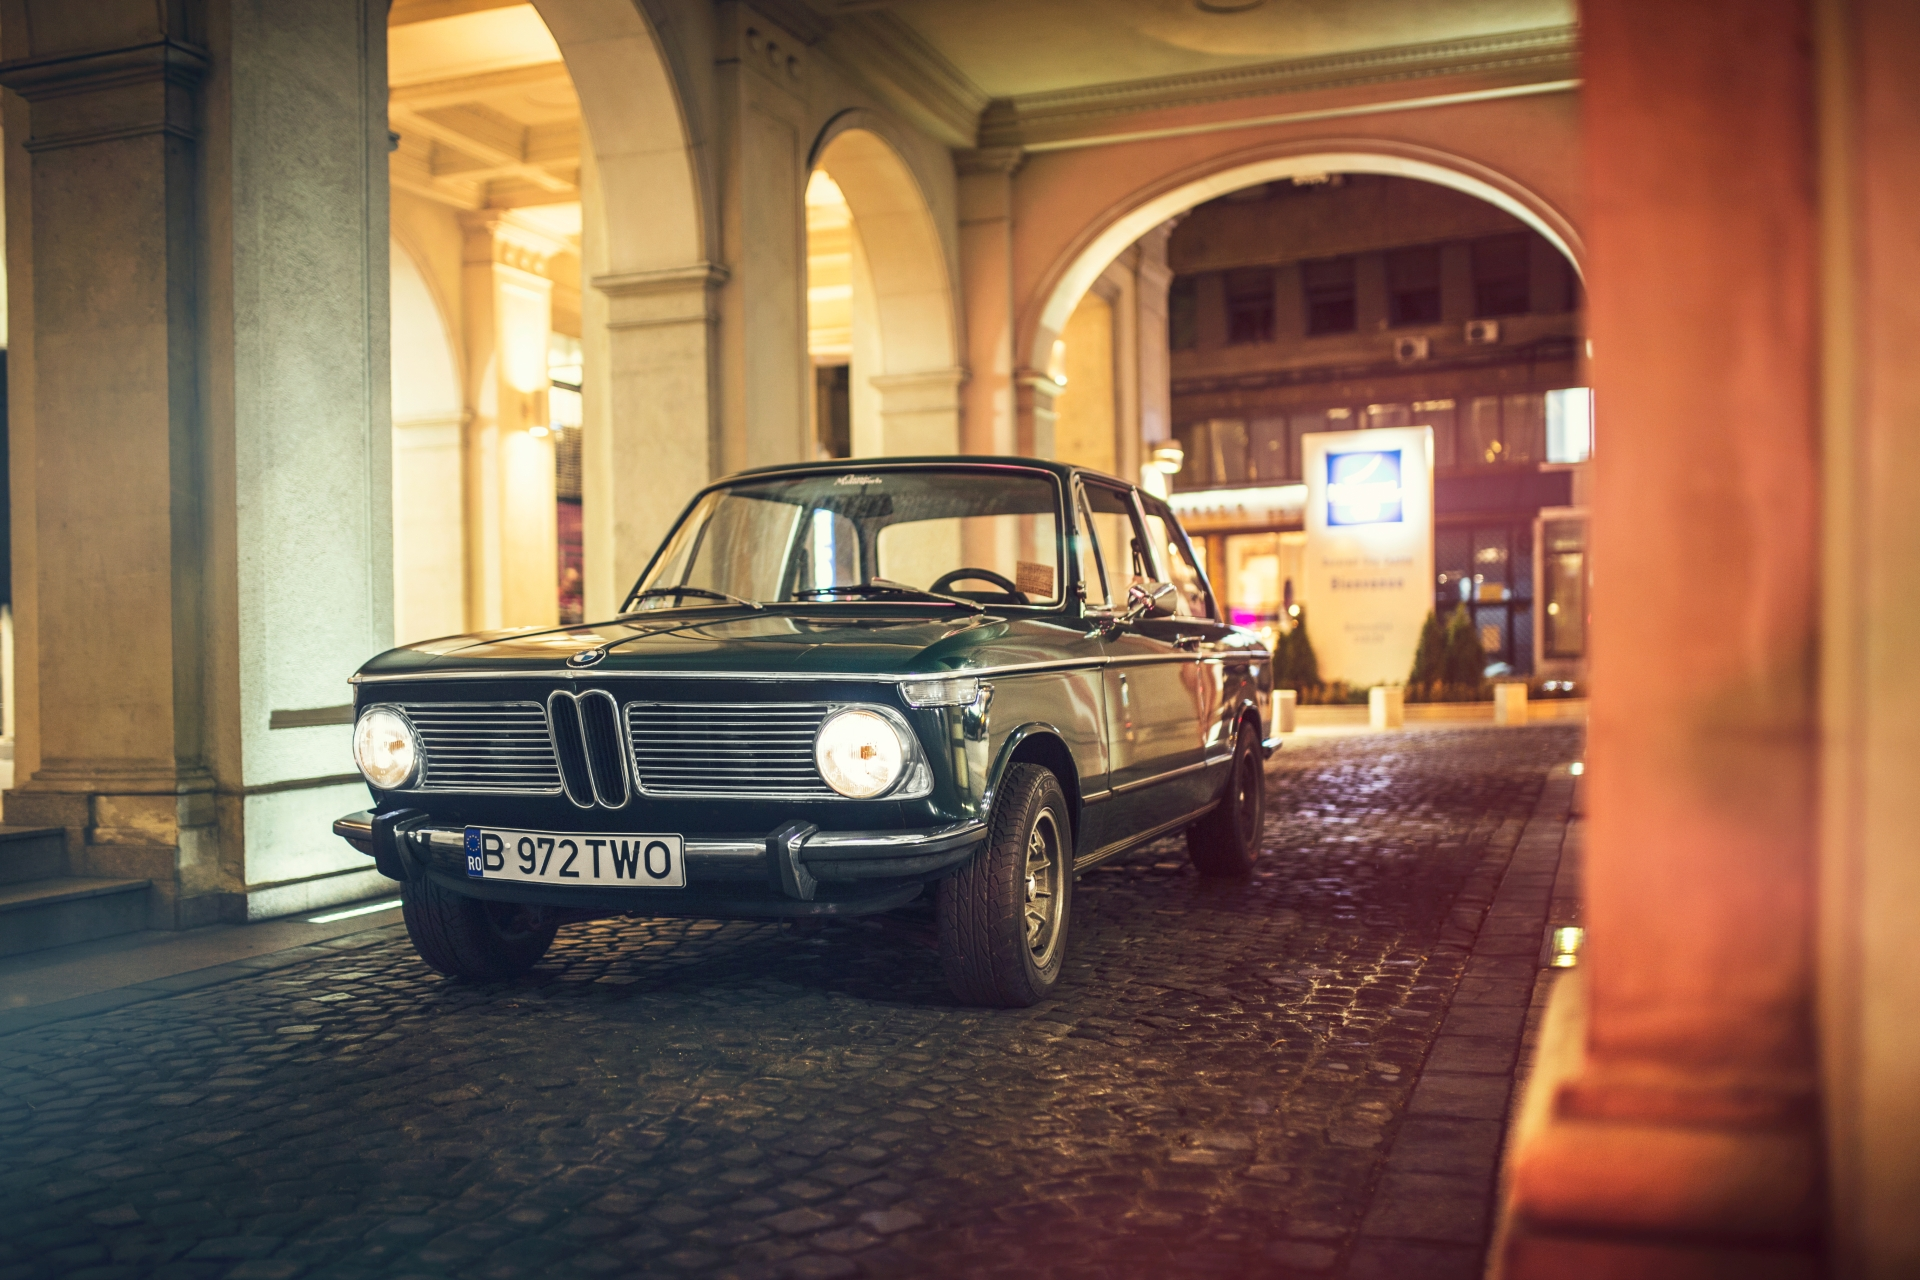 BMW 2002 vs 3 Series 27